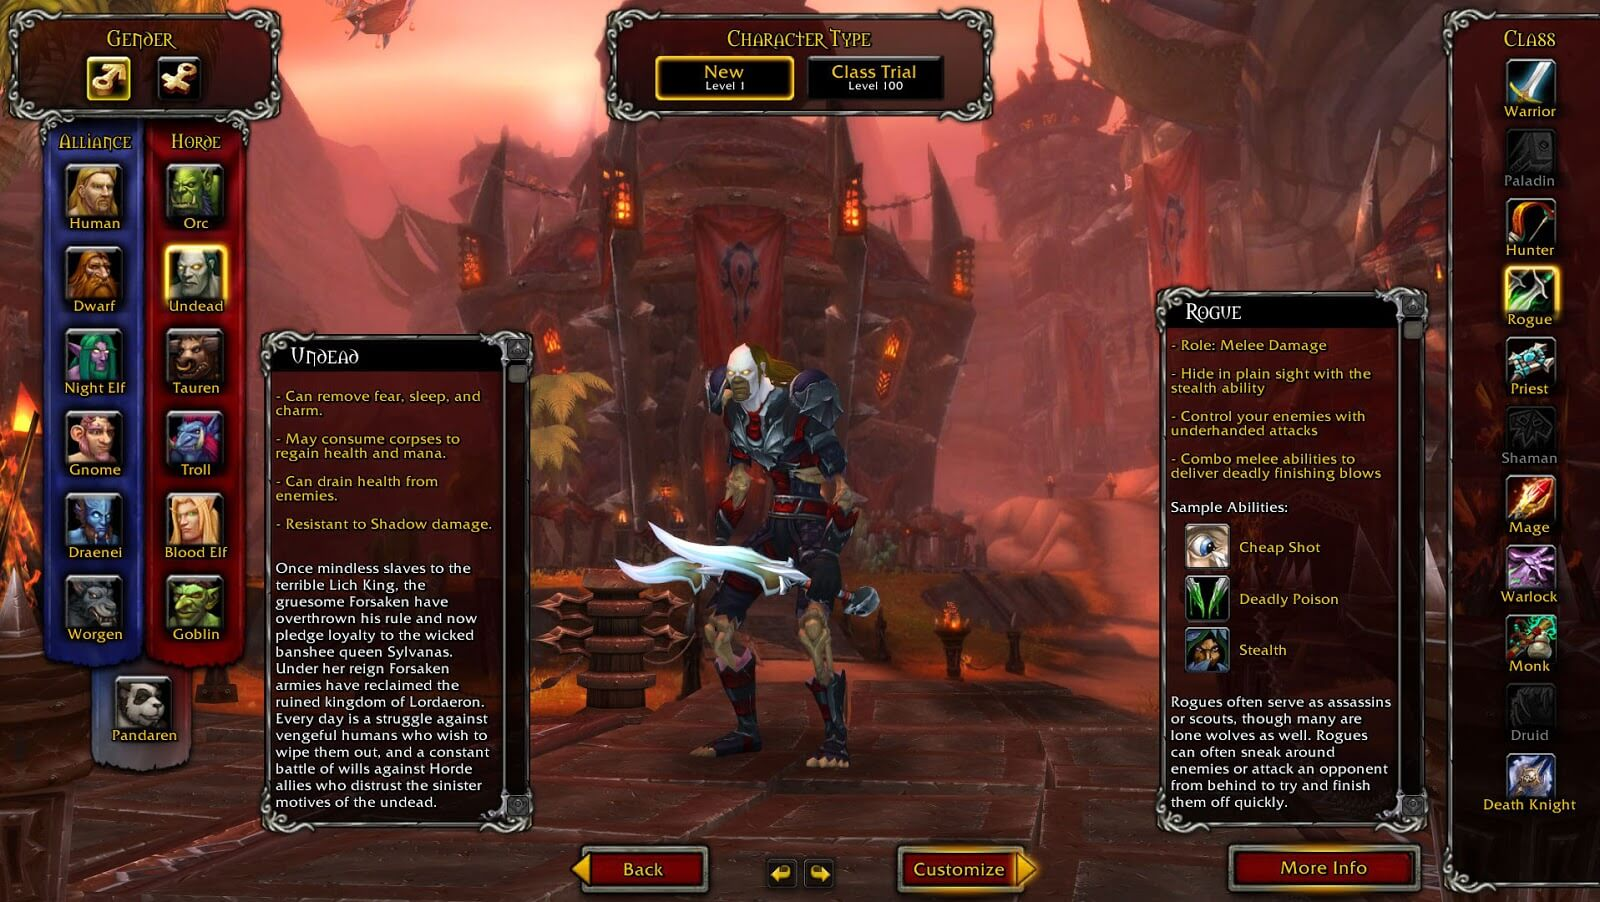 How to Get Into World of Warcraft in 2018 - TechSpot